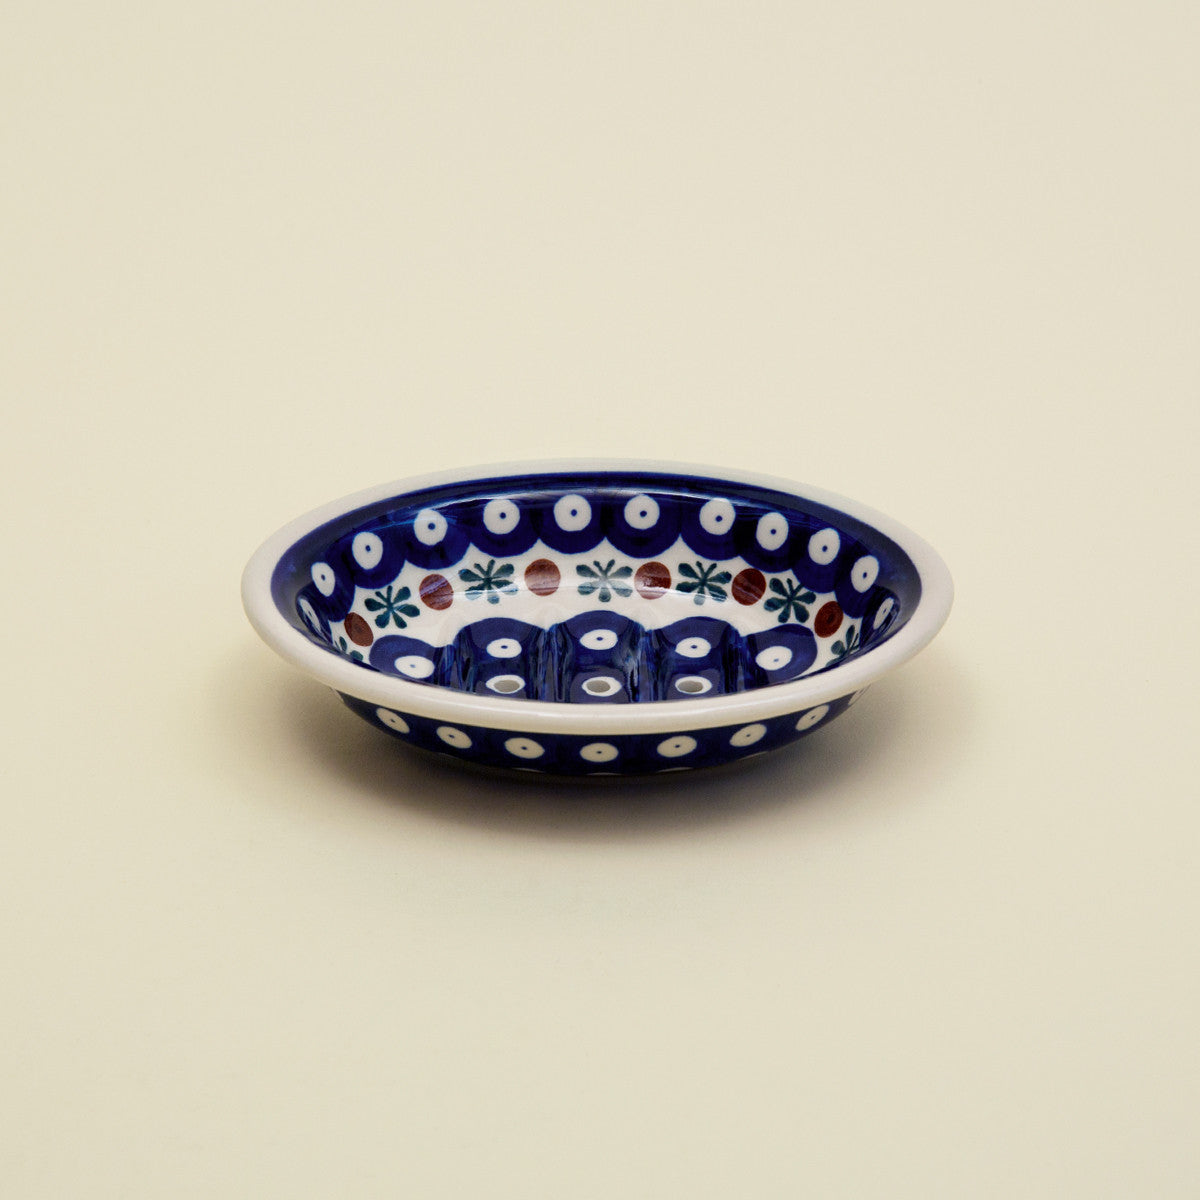 Polish Soap Dish